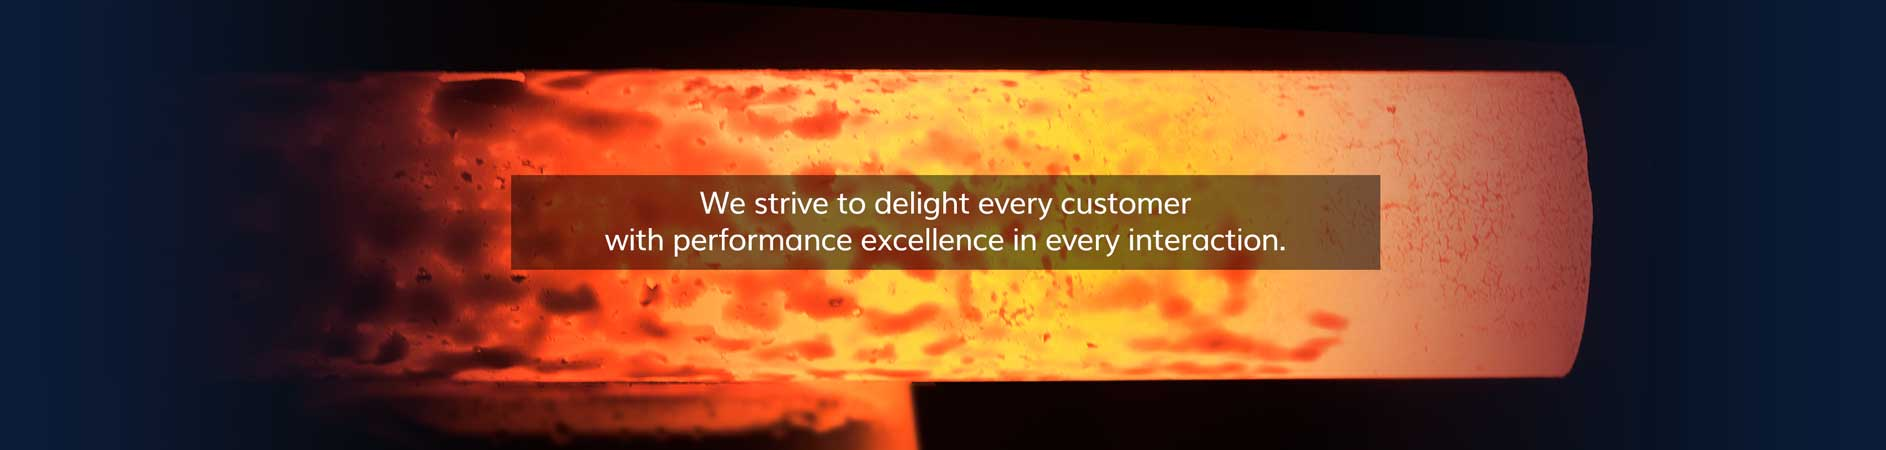 We strive to delight every customer with performance excellence in every interaction.